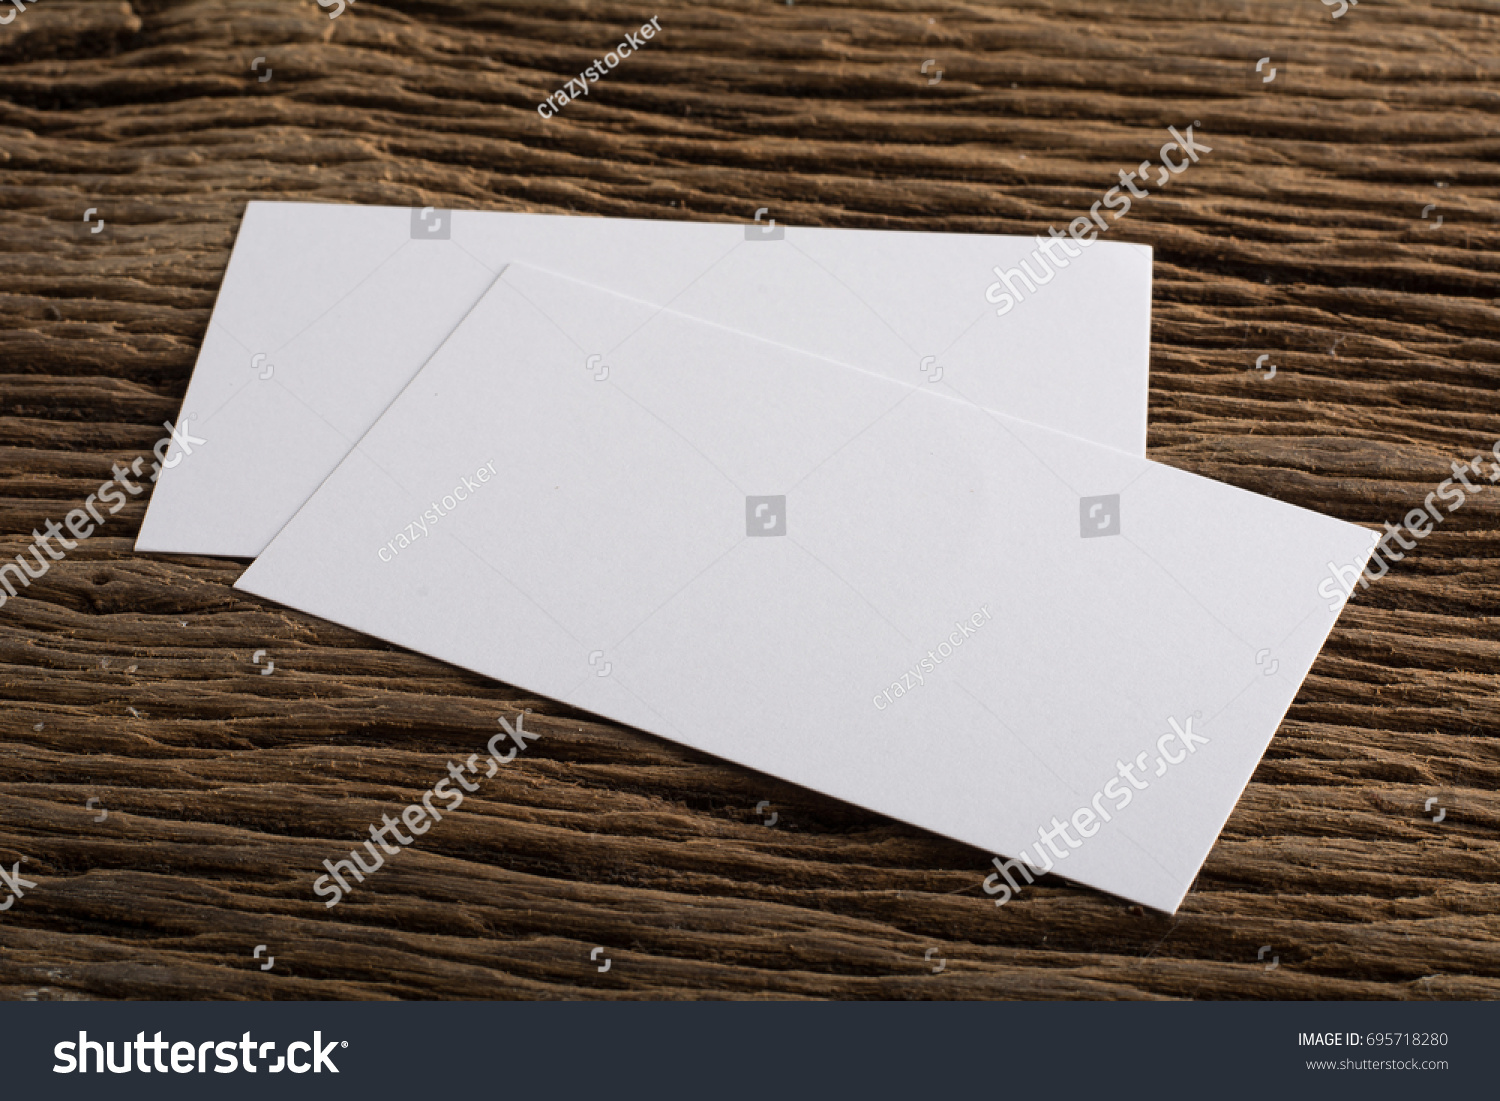 Blank white business card presentation corporate stock photo blank white business card presentation of corporate identity on wood background magicingreecefo Image collections